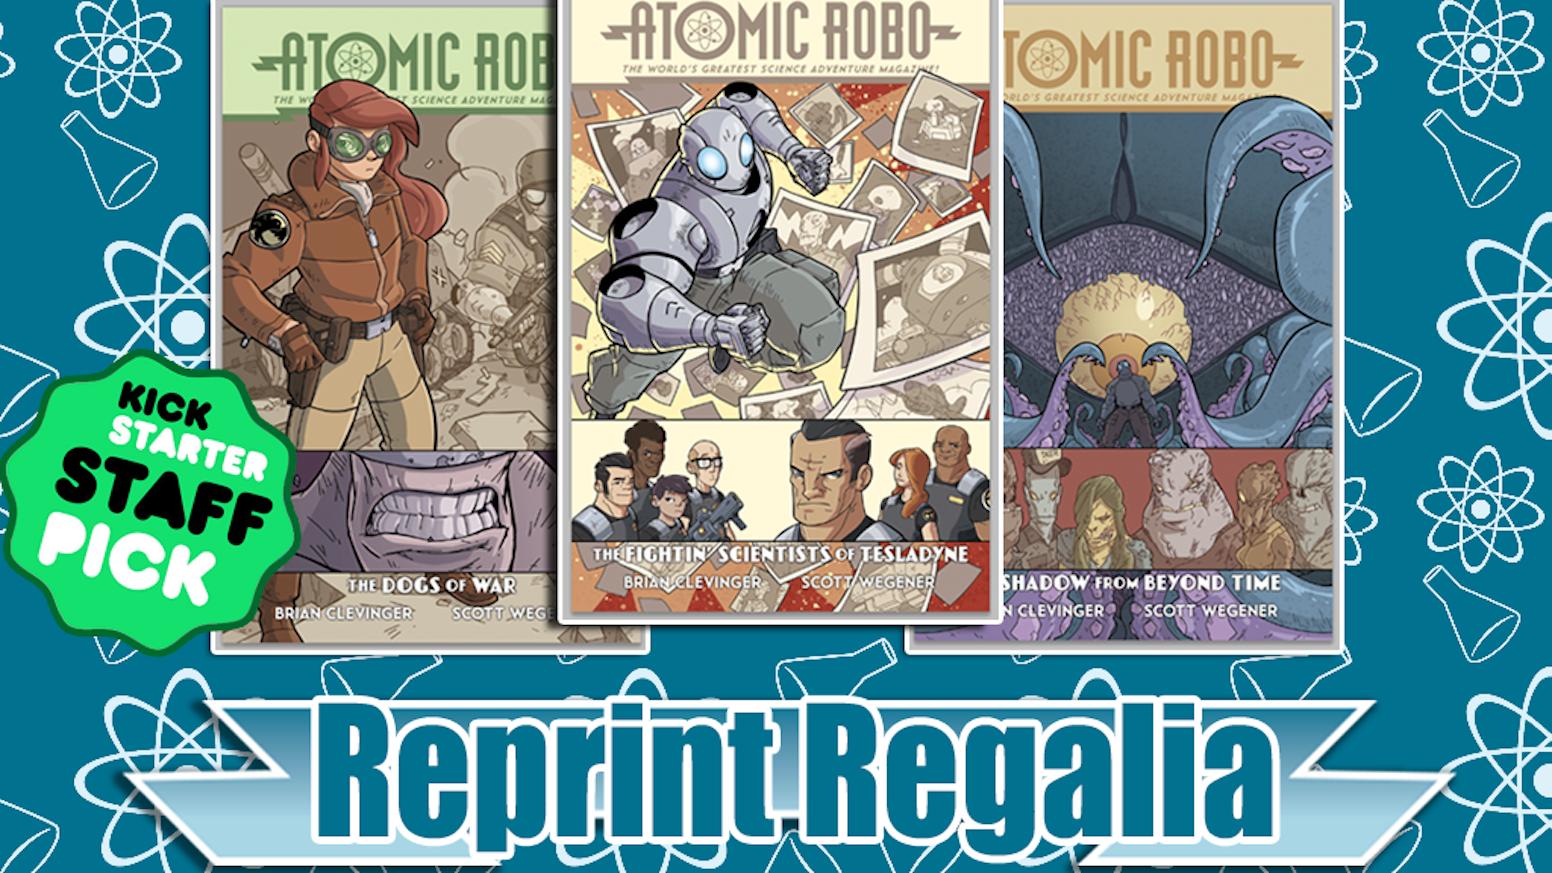 You guys brought Atomic Robo back in print and it's better than ever. Now featuring: HARDCOVERS.